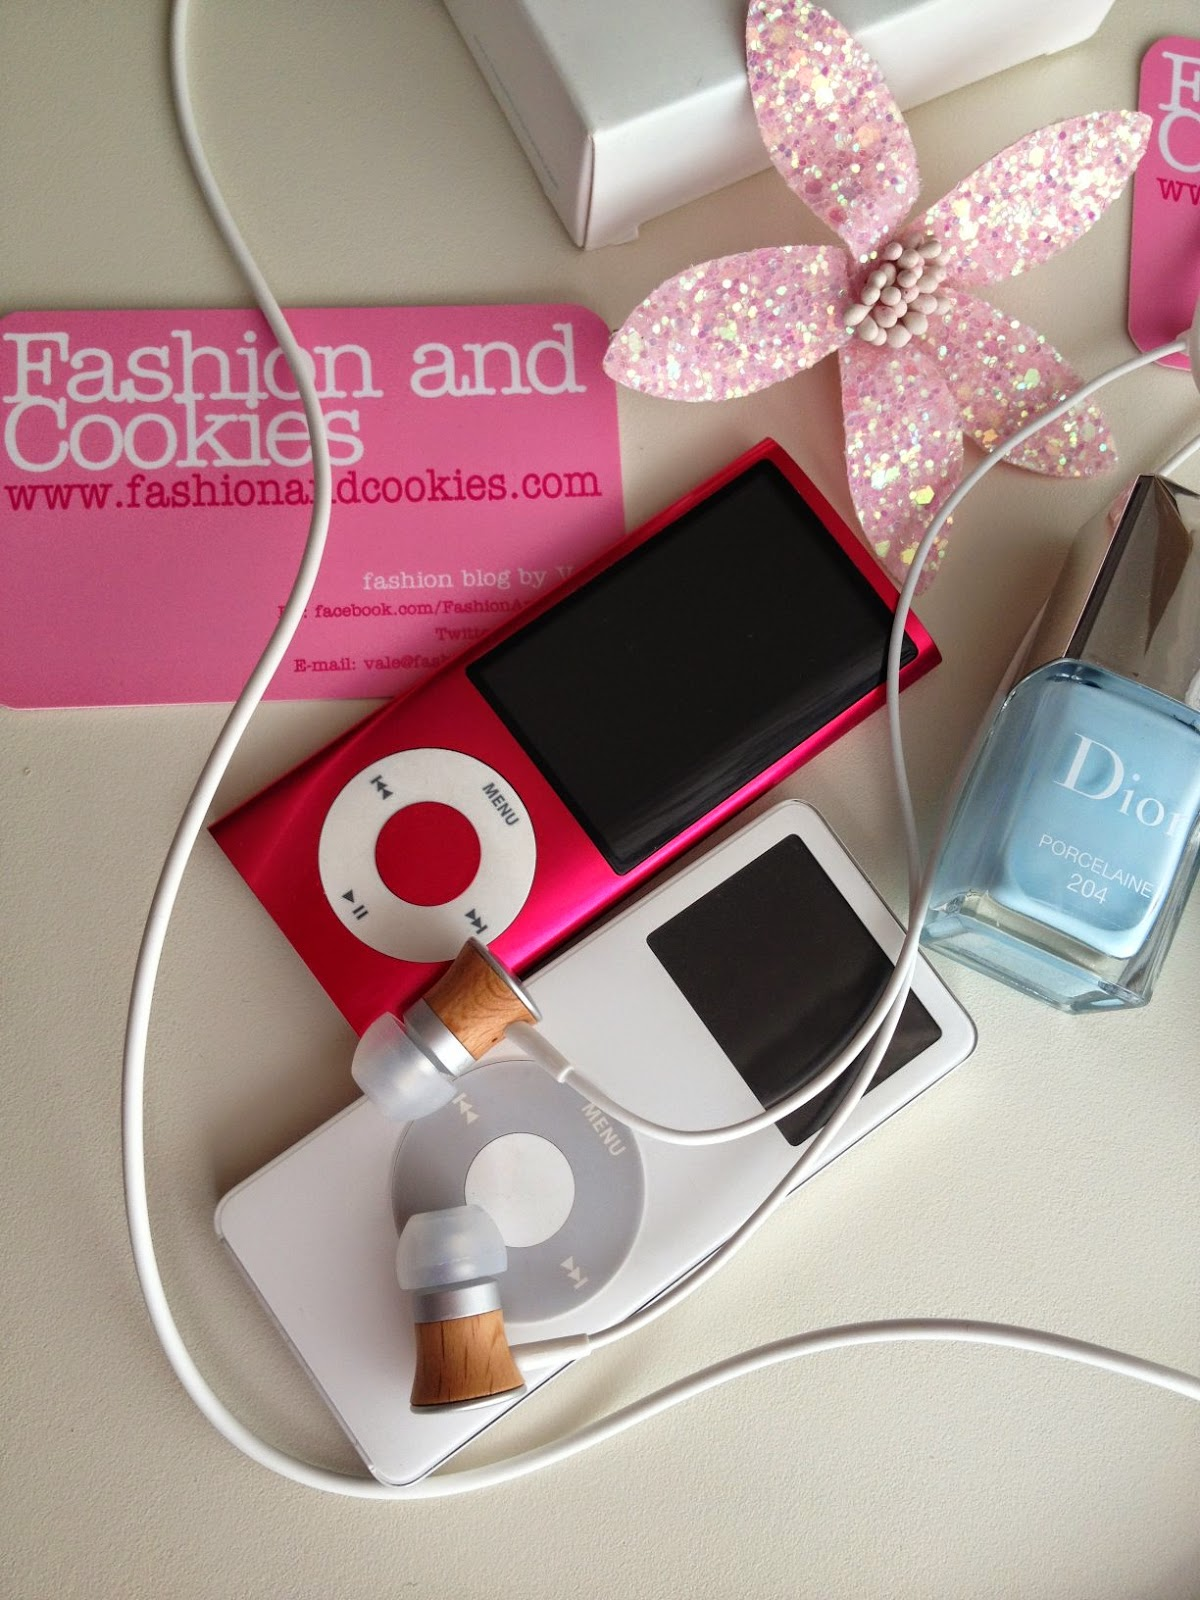 Meze 11 Deco, wood earphones, Fashion and Cookies, fashion blogger